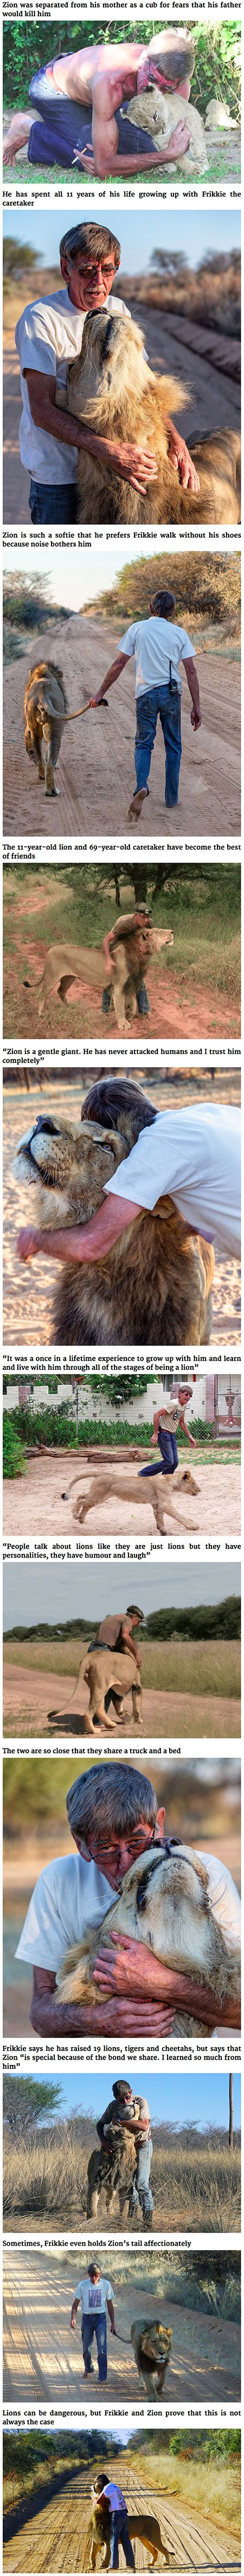 It goes without saying that you should be careful around lions and other wild animals, but that doesn't mean that they are un-feeling, cold-blooded killers. Frikkie Von Solms, a 69-year-old lion caretaker in Southern Africa, knows this perfectly well: he has spent the last 11 raising Zion, a gentle, tender and loving African lion.